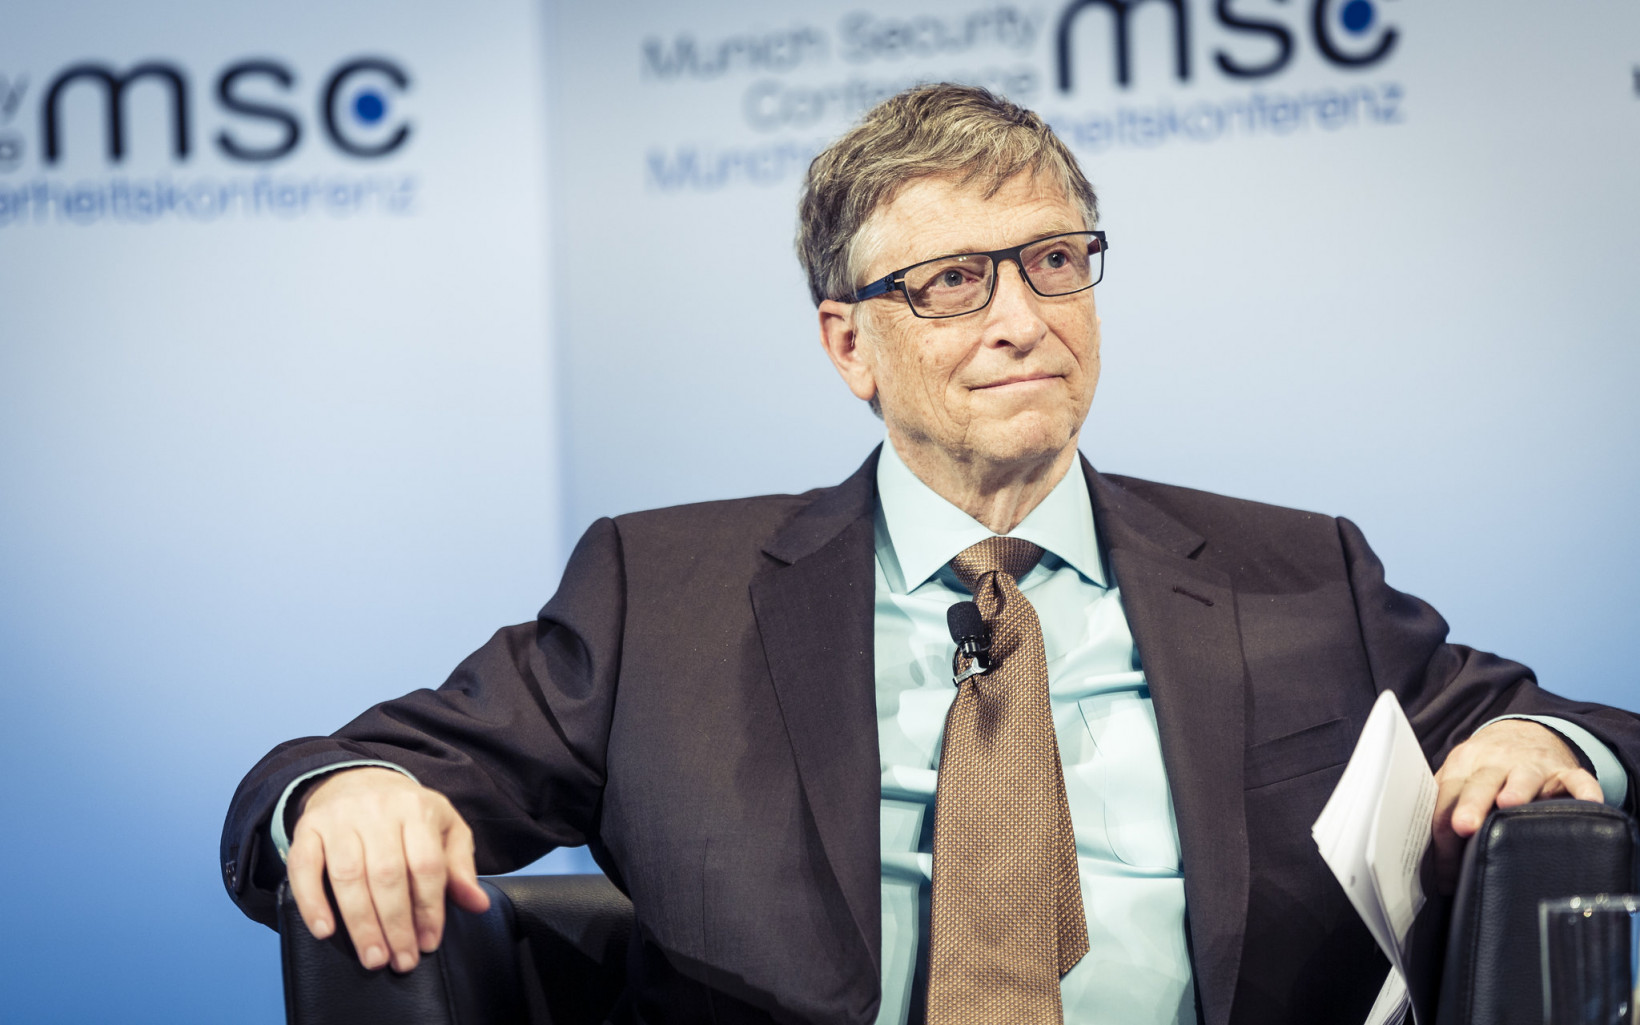 Microsoft co-founder Bill Gates is a 'moderate' polluter by billionaire standards